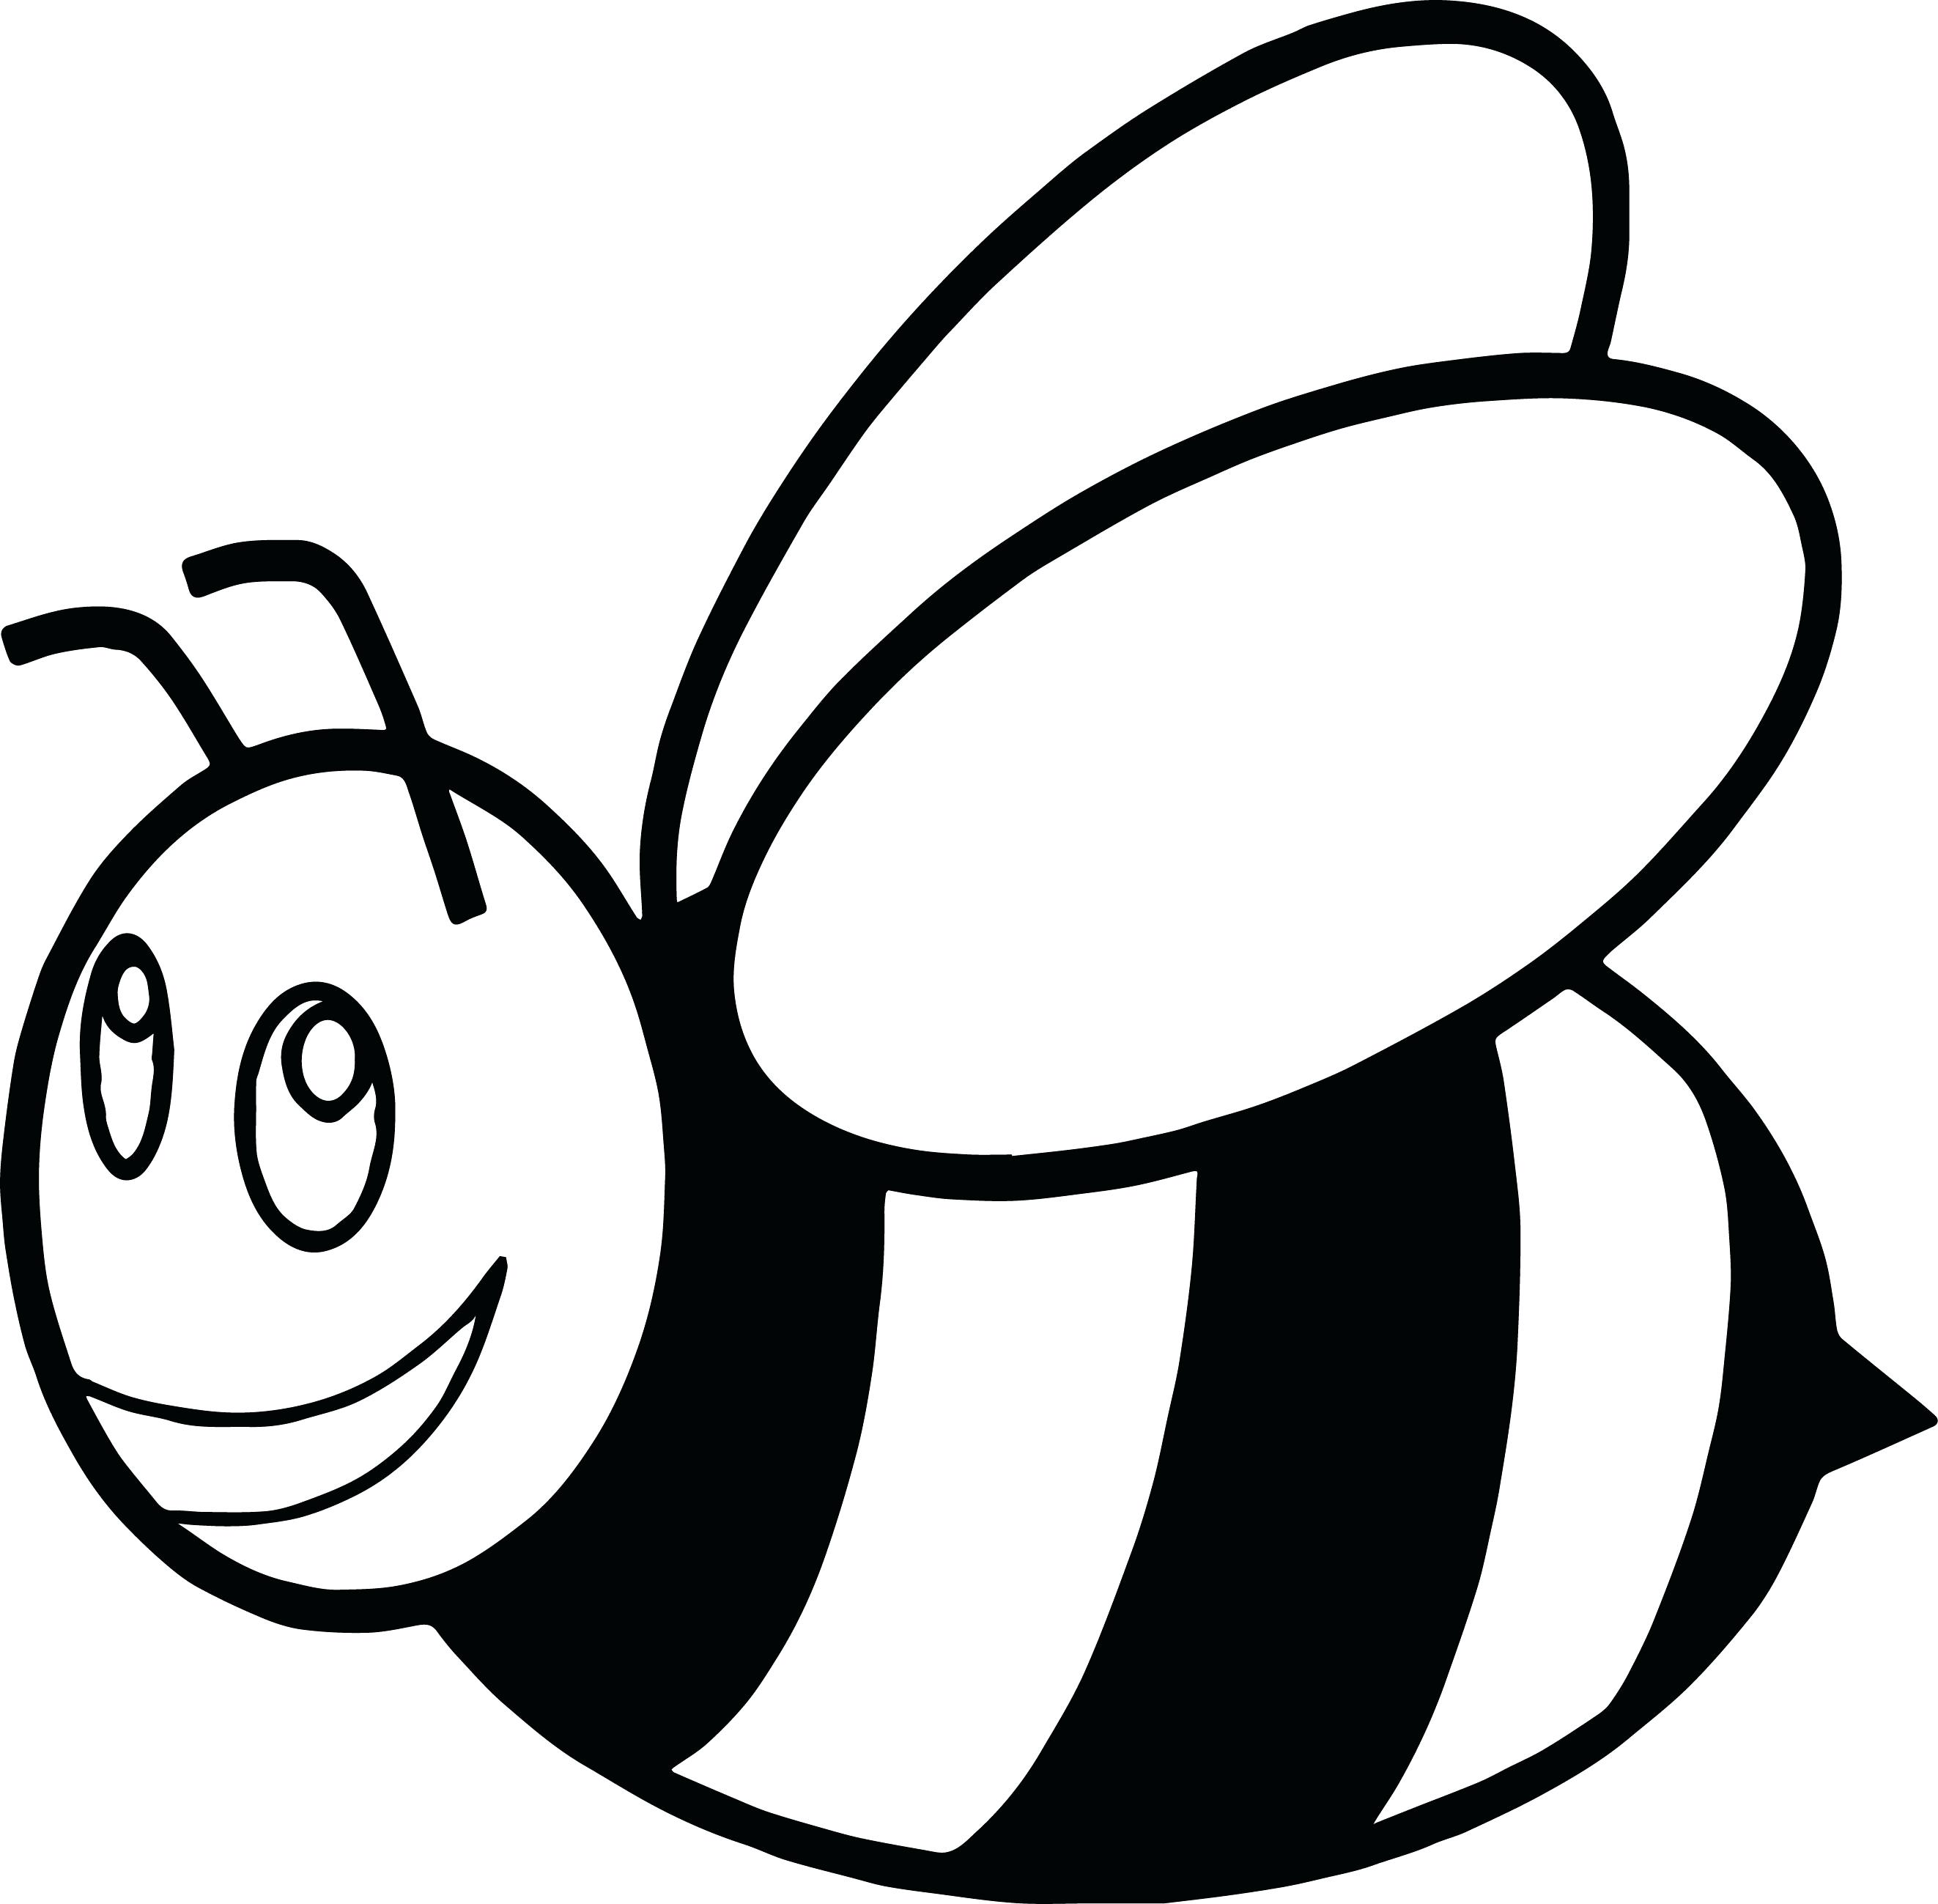 beehive coloring page pictures of bees to color amazing wallpapers beehive page coloring